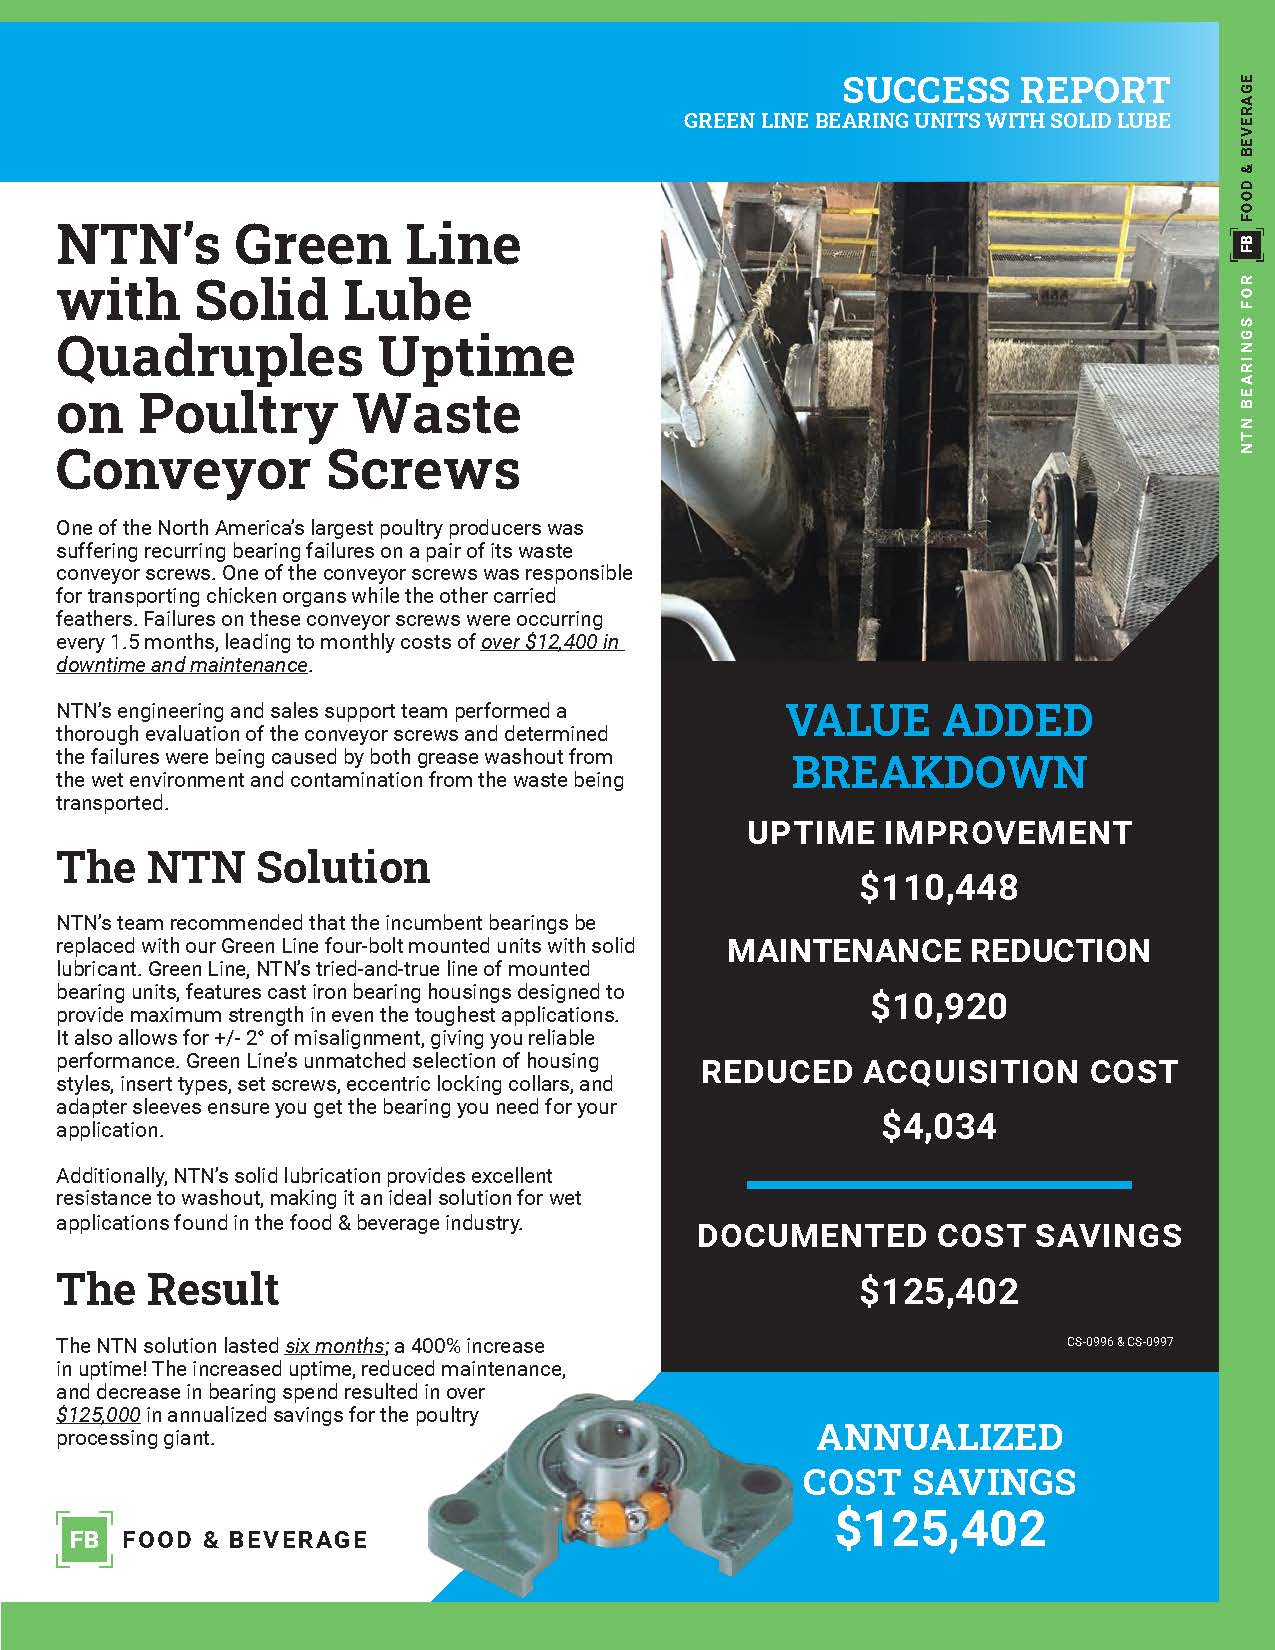 ntn green line bearing units with solid lube success report e page 1